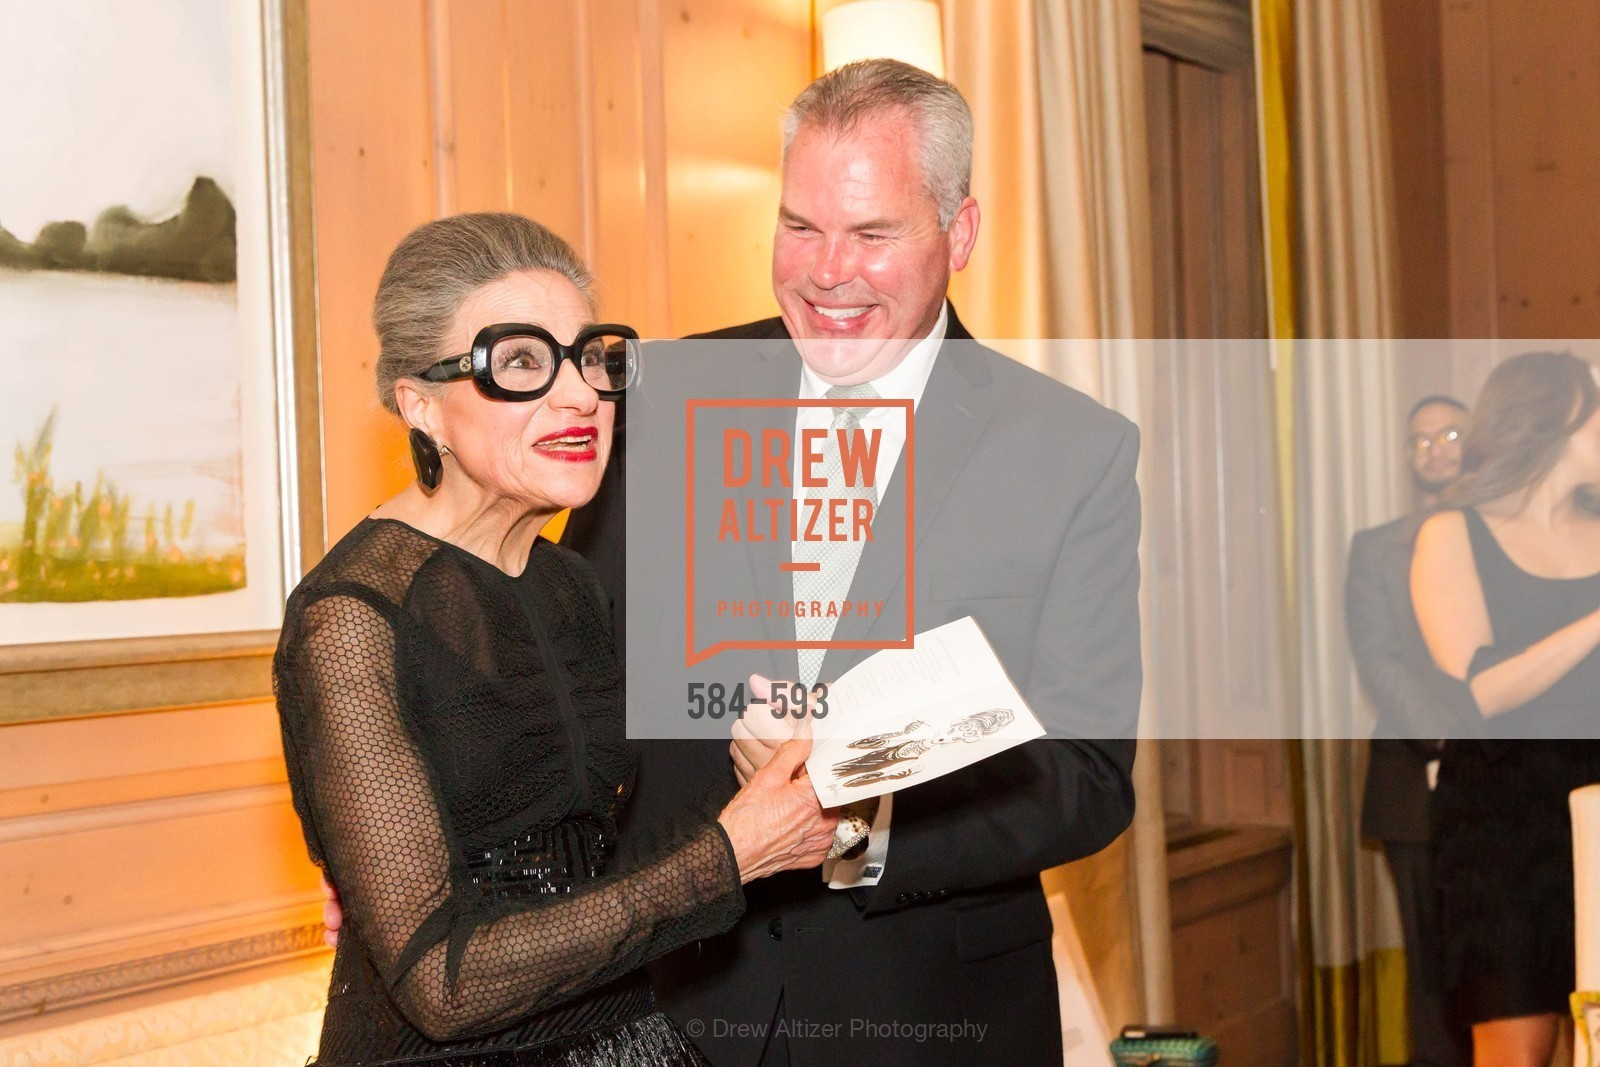 Joy Venturini Bianchi, Martin Halloran, COUTURE FOR A CAUSE, US, October 5th, 2014,Drew Altizer, Drew Altizer Photography, full-service agency, private events, San Francisco photographer, photographer california